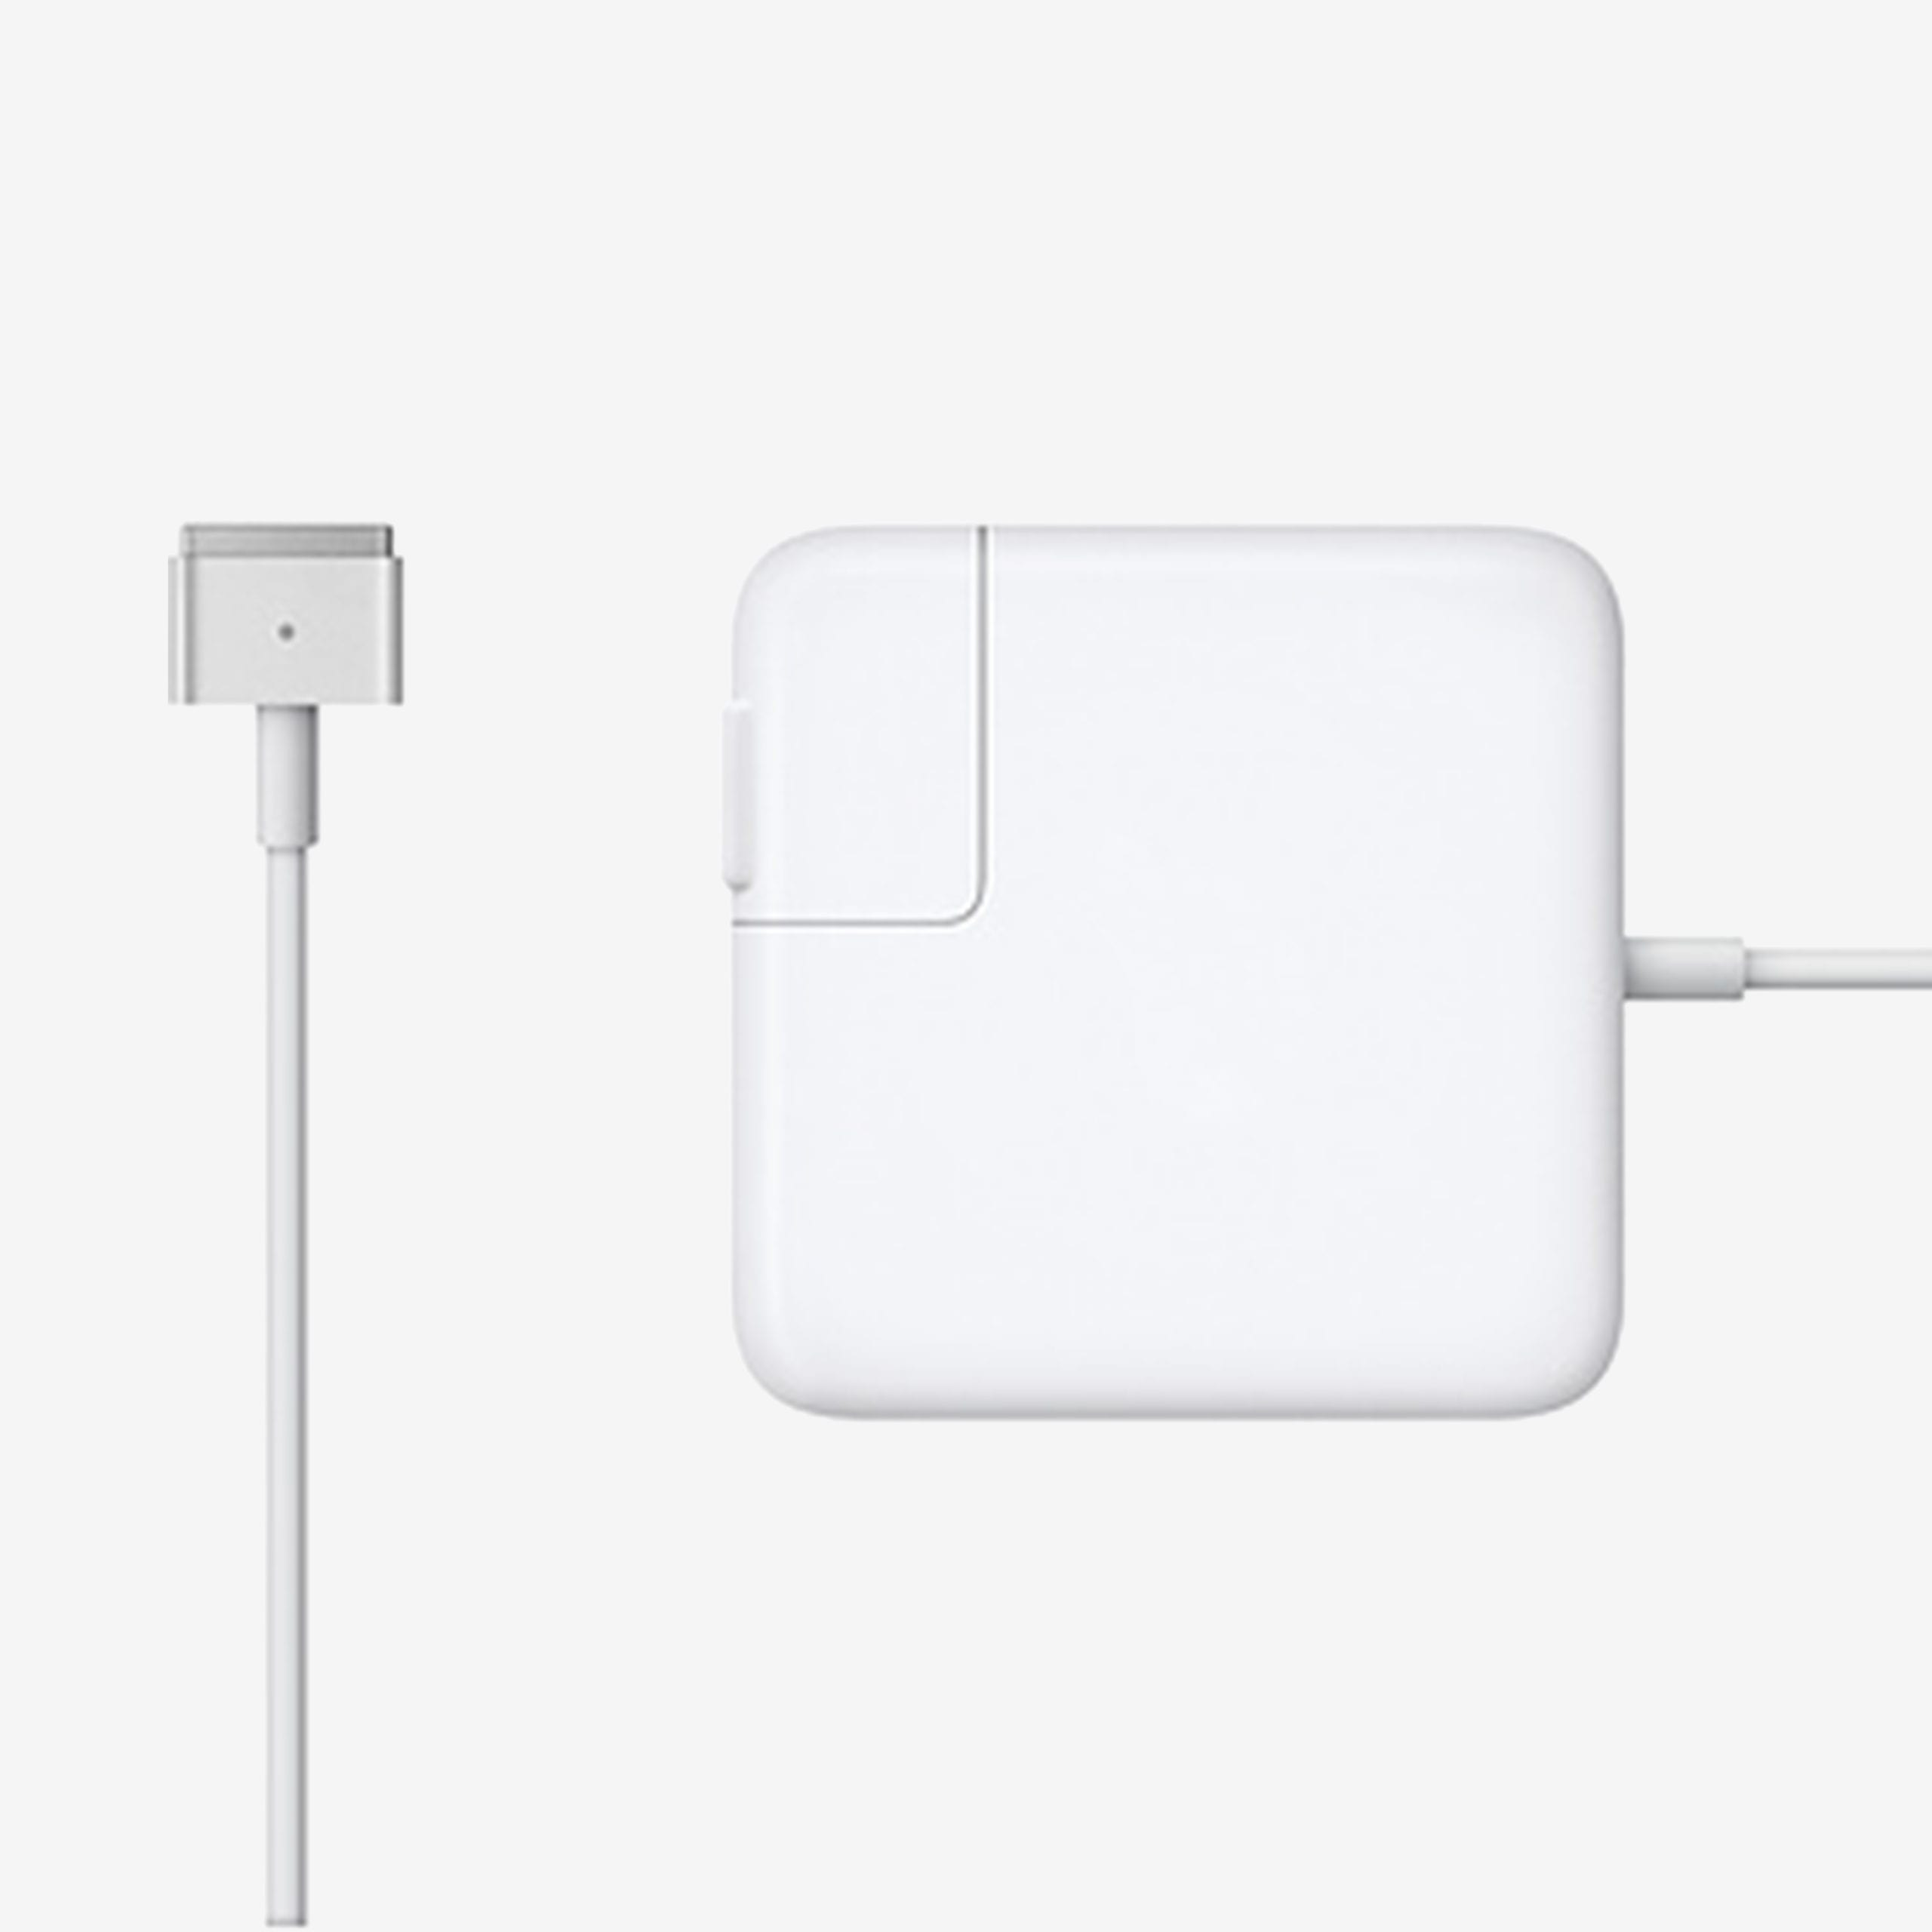 1 x Magsafe 2 Charger